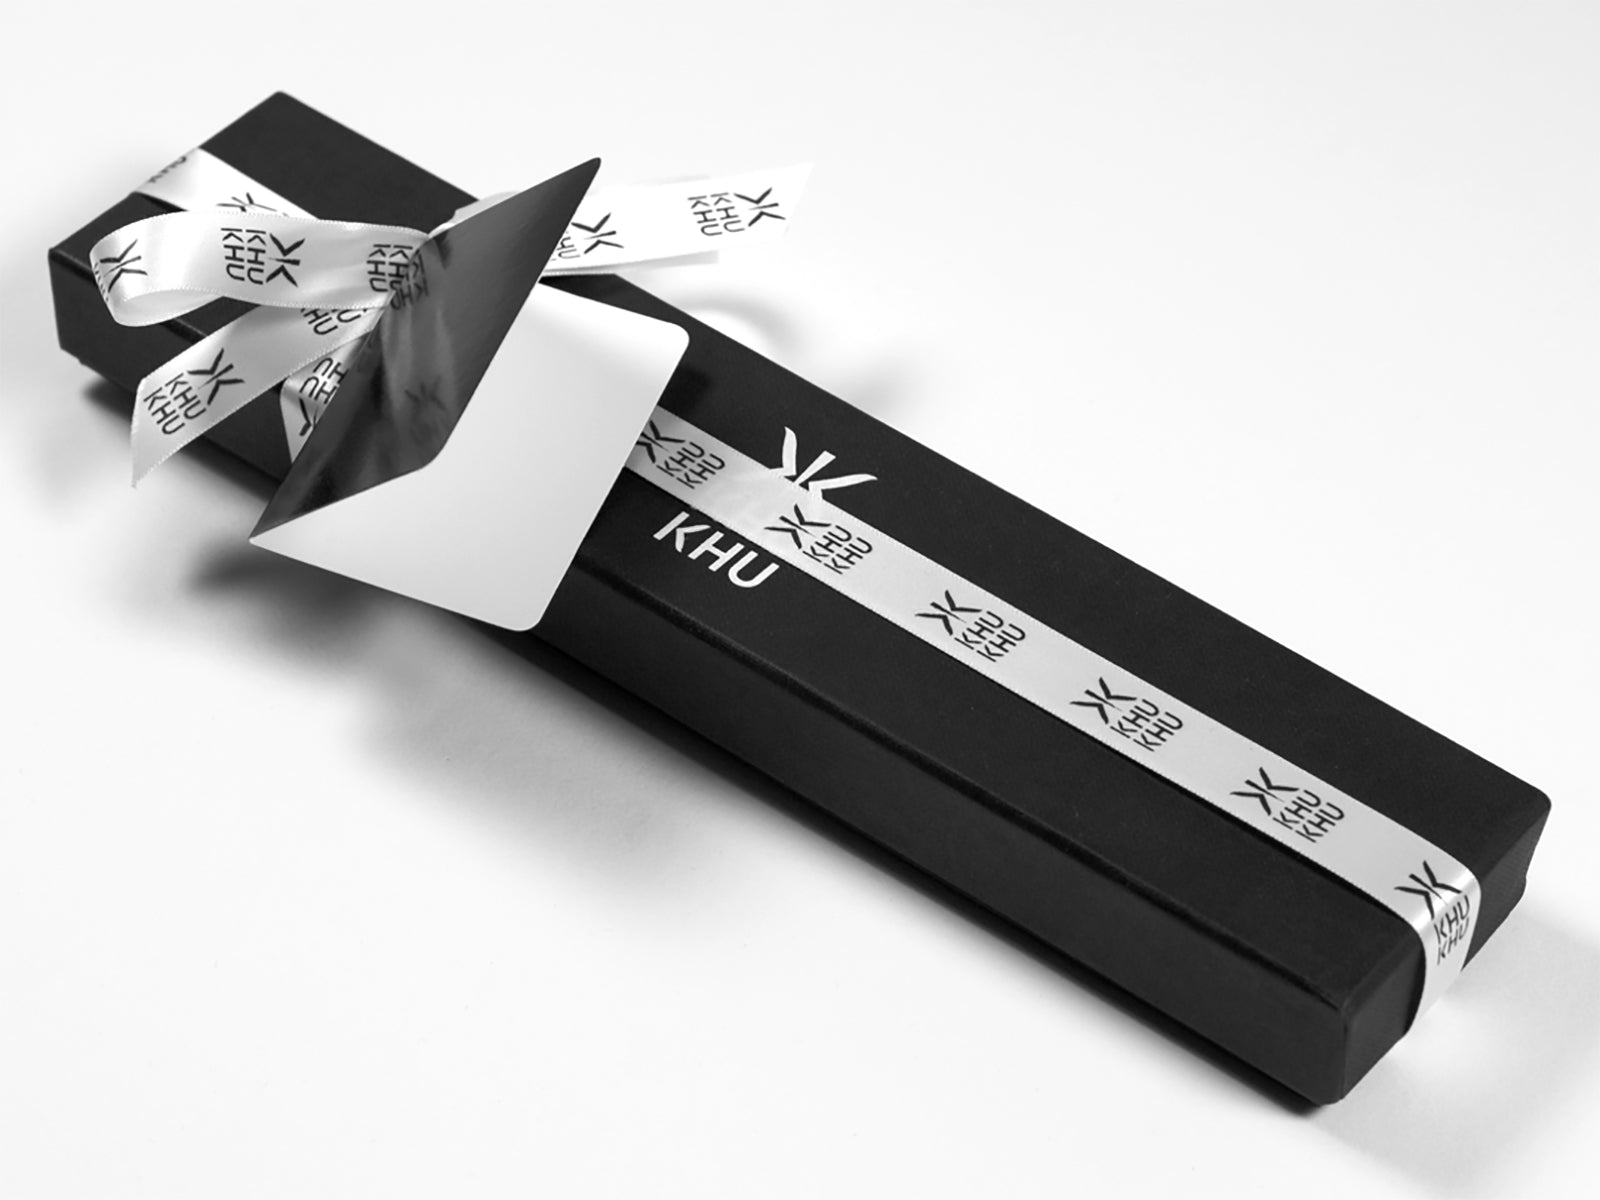 Khu Khu luxury hand-fan gift wrap. The fan is wrapped in a cotton bag then tissue wrapped and placed in a luxury black box with white logo, with additional ribbon and black glossy tag.